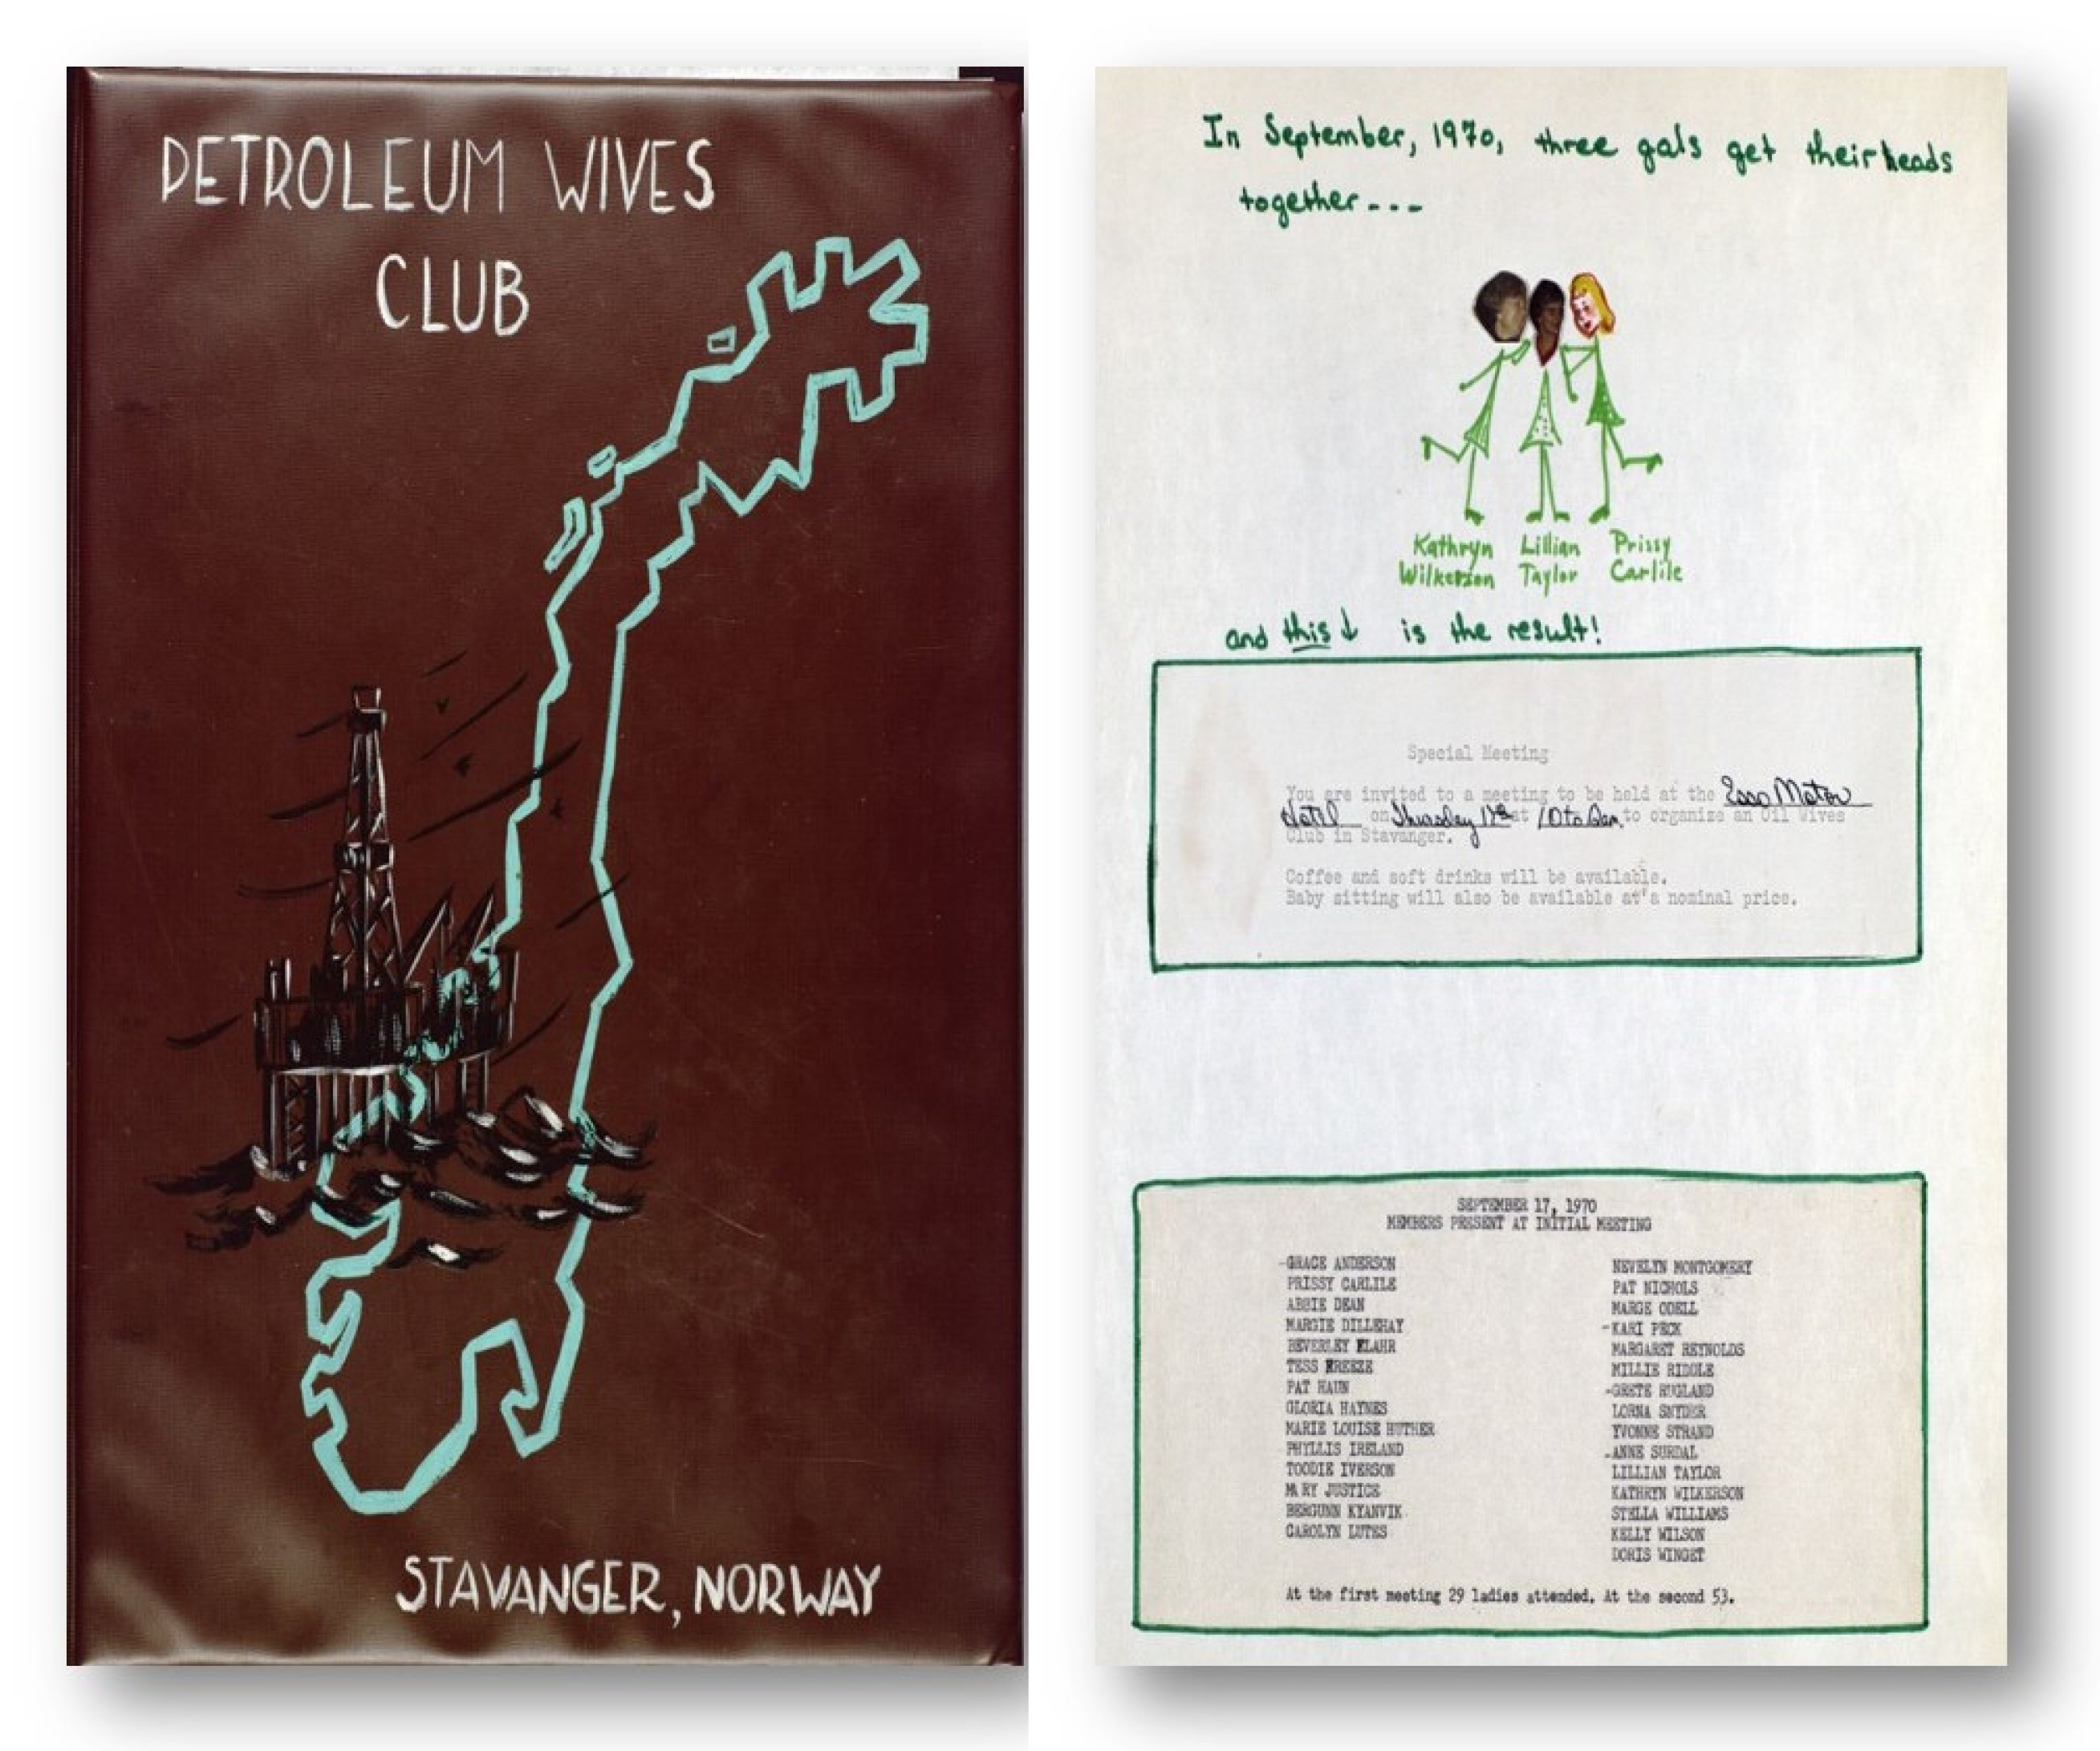 Petroleum wives club pwc creating a meaningful and inclusive scrapbook stopboris Choice Image